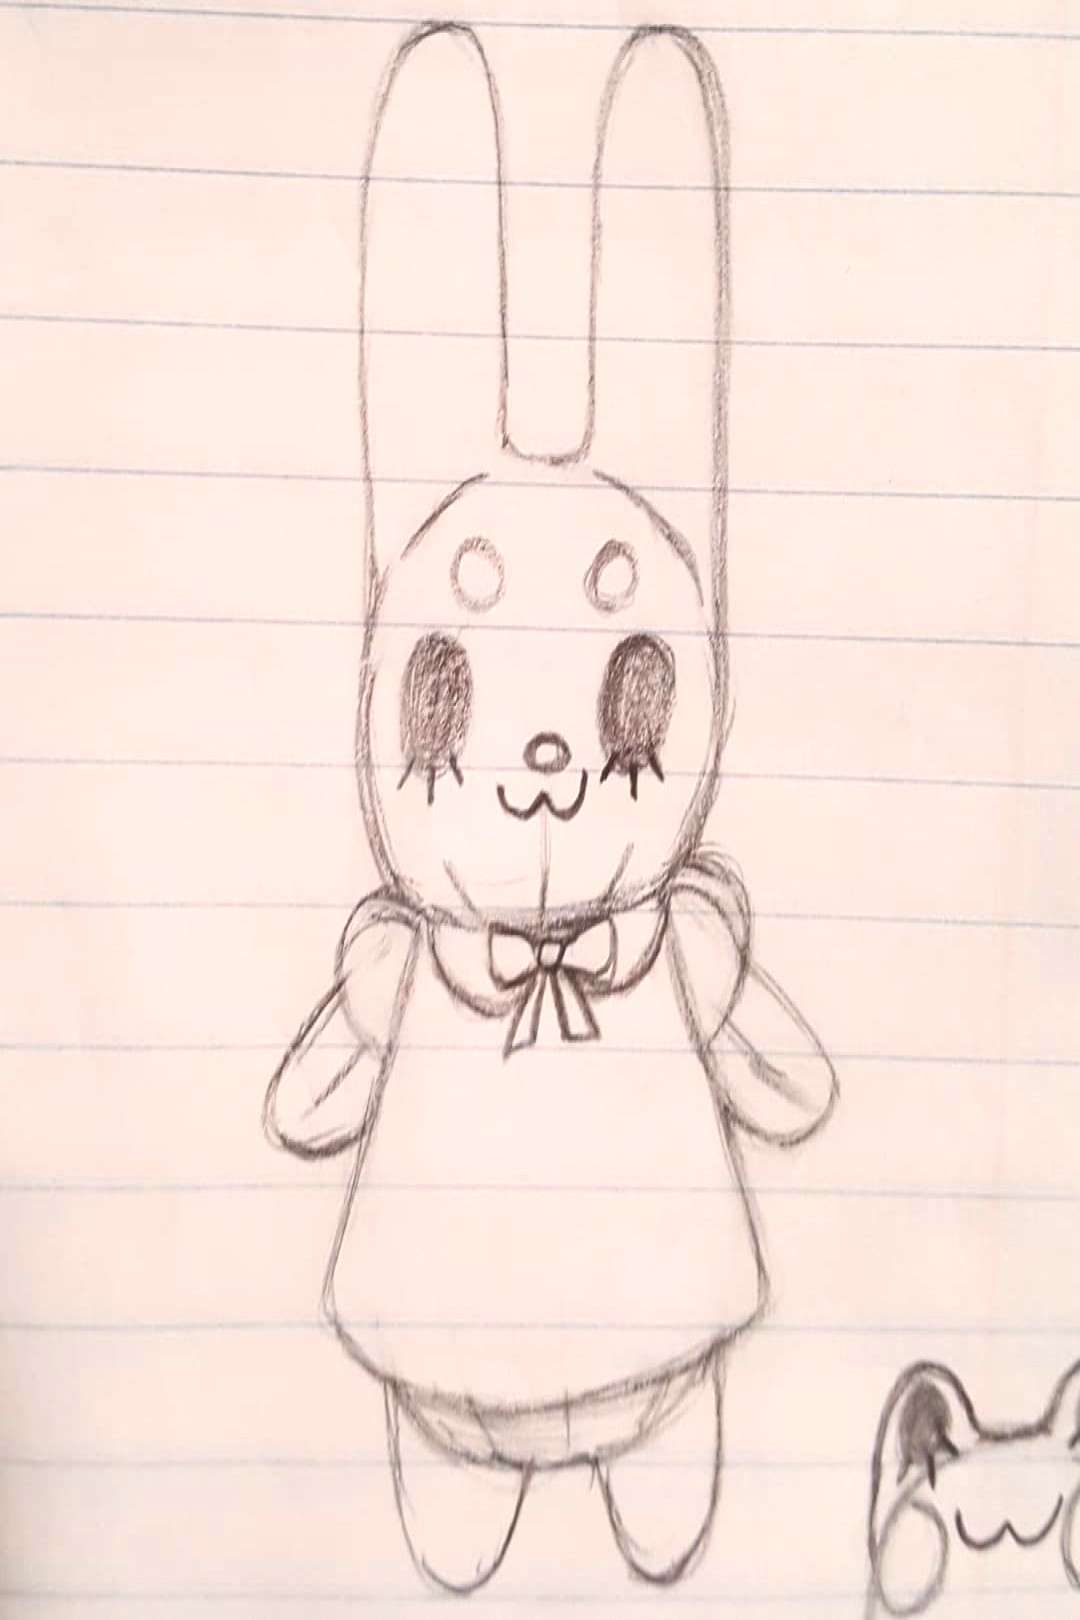 Busy day all I had time to sketch out was some cute lil plushy gu